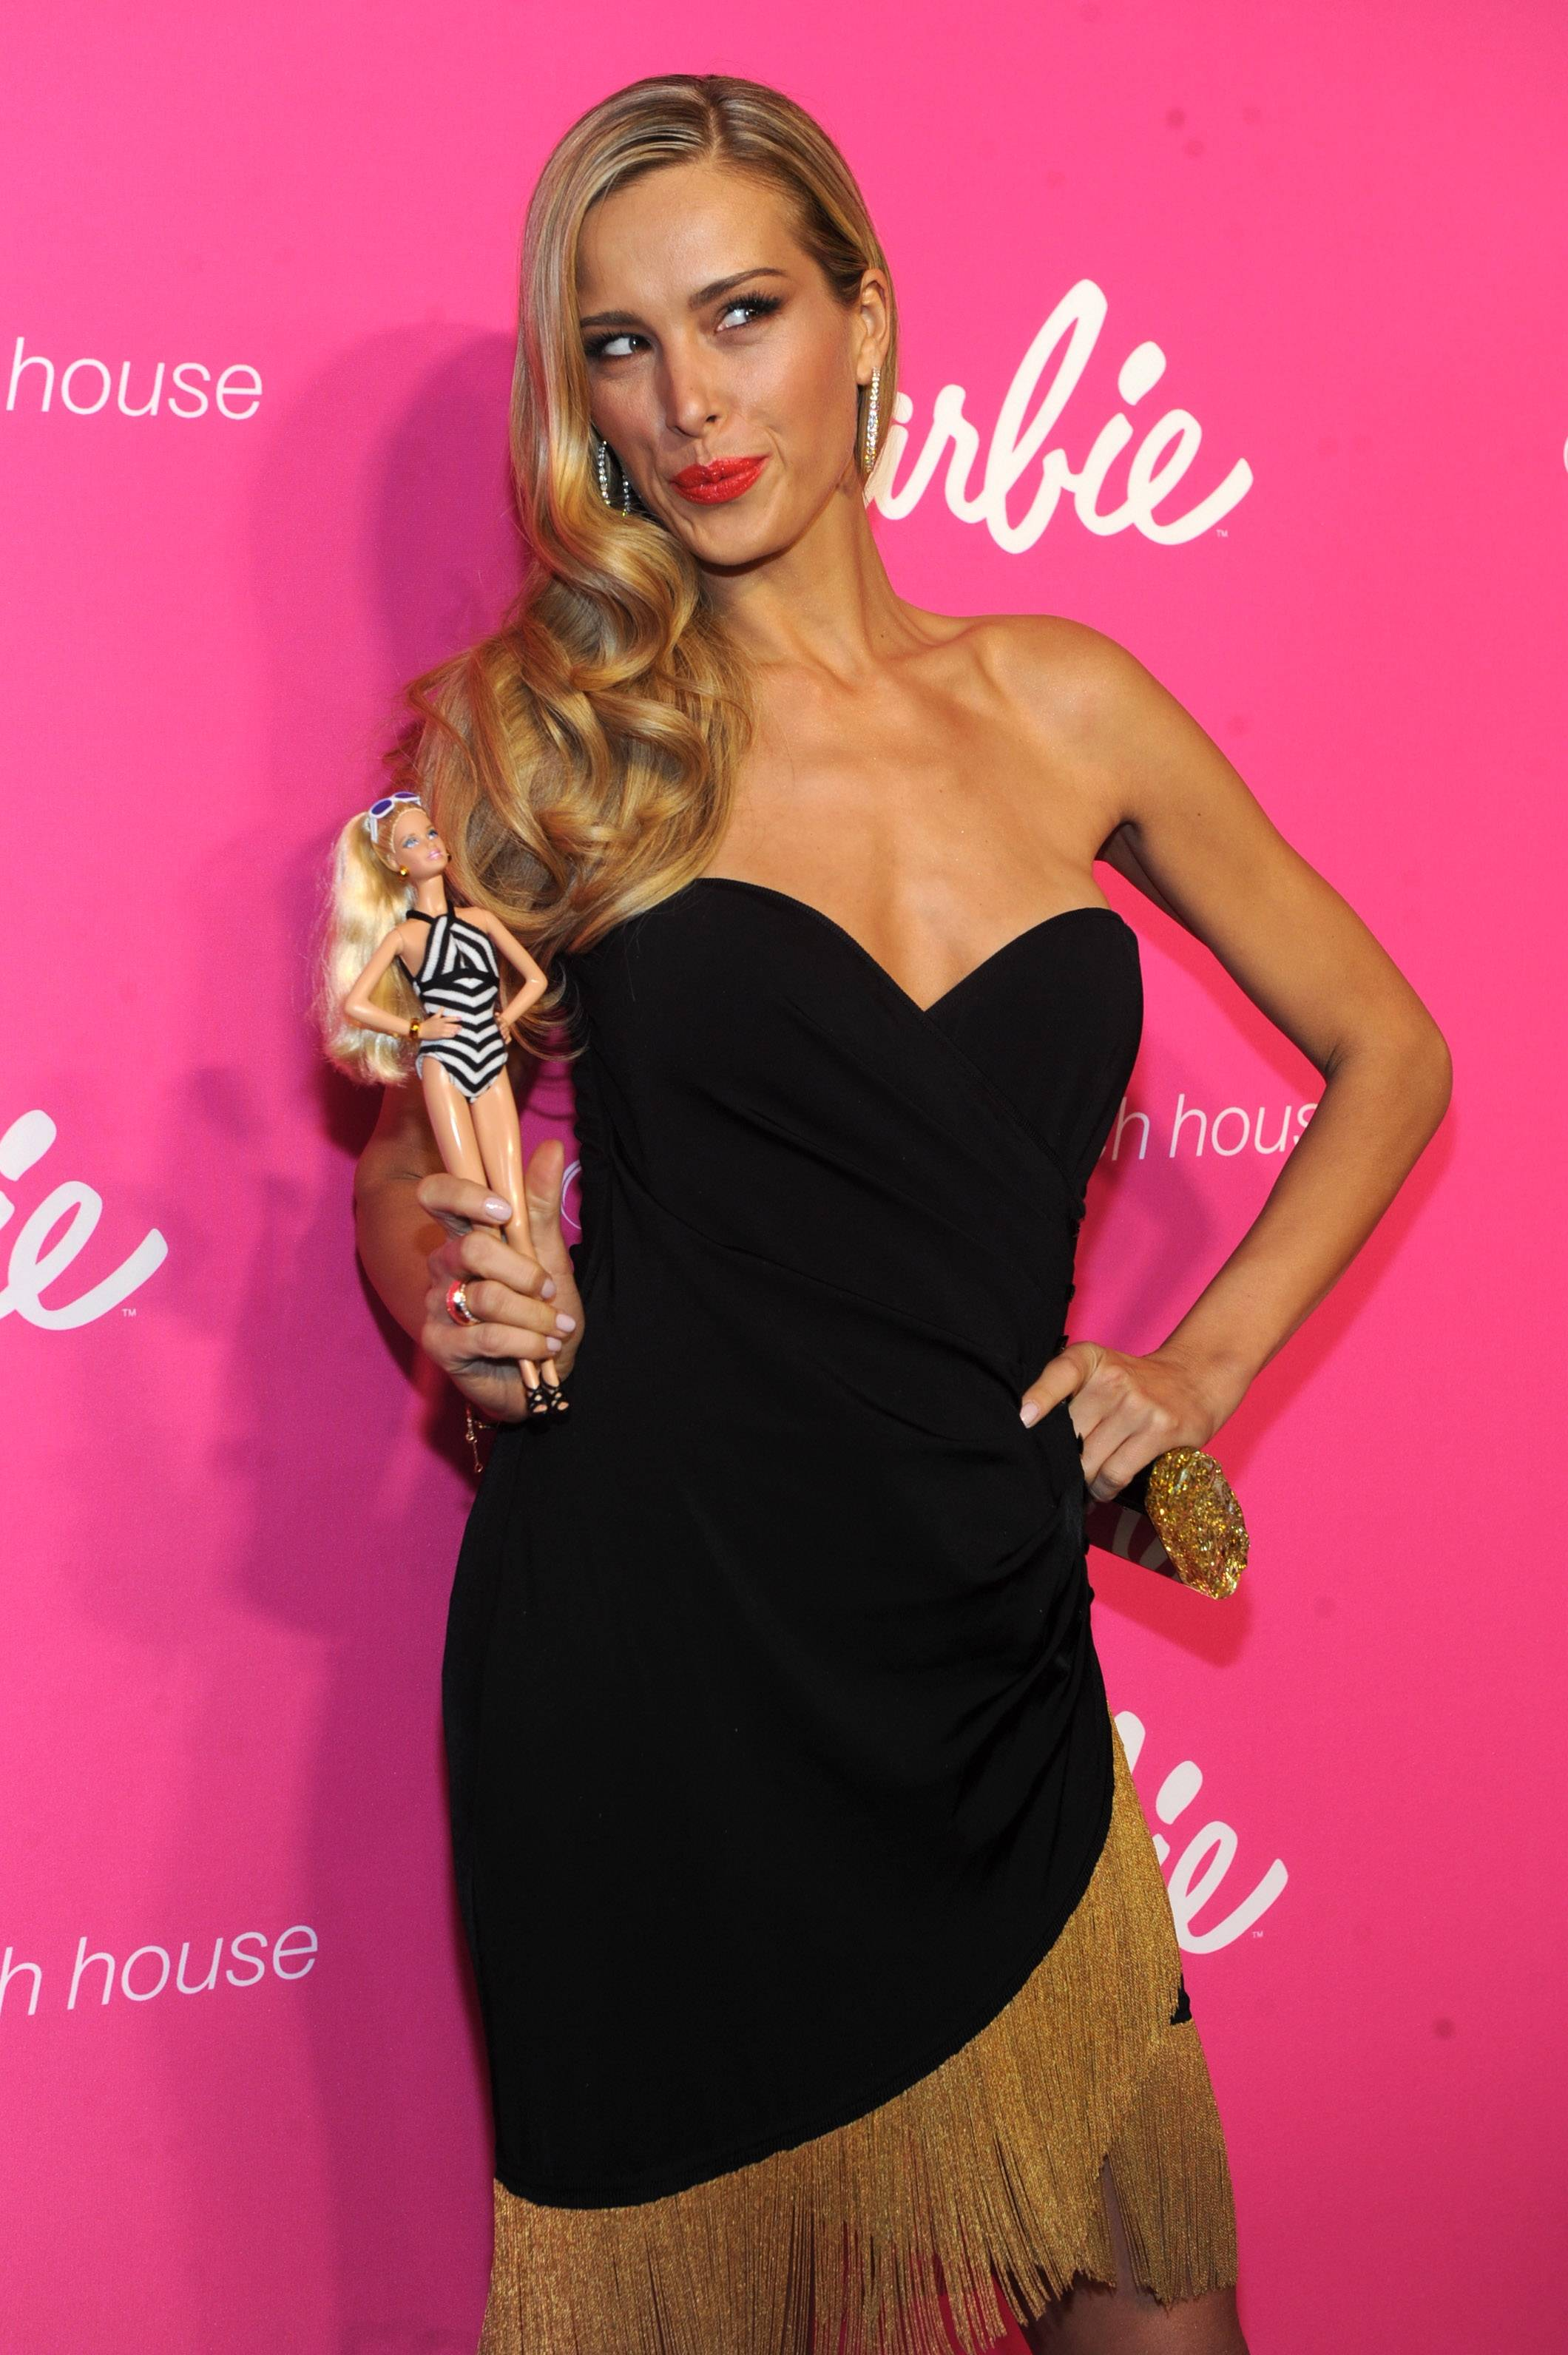 IMAGE DISTRIBUTED FOR BARBIE — Model Petra Nemcova attends the Barbie and Sports Illustrated Swimsuit 50th anniversary celebration of the Sports Illustrated Swimsuit legends on Monday, Feb. 17, 2014, in New York. (Photo by Diane Bondareff/Invision for Barbie/AP Images)